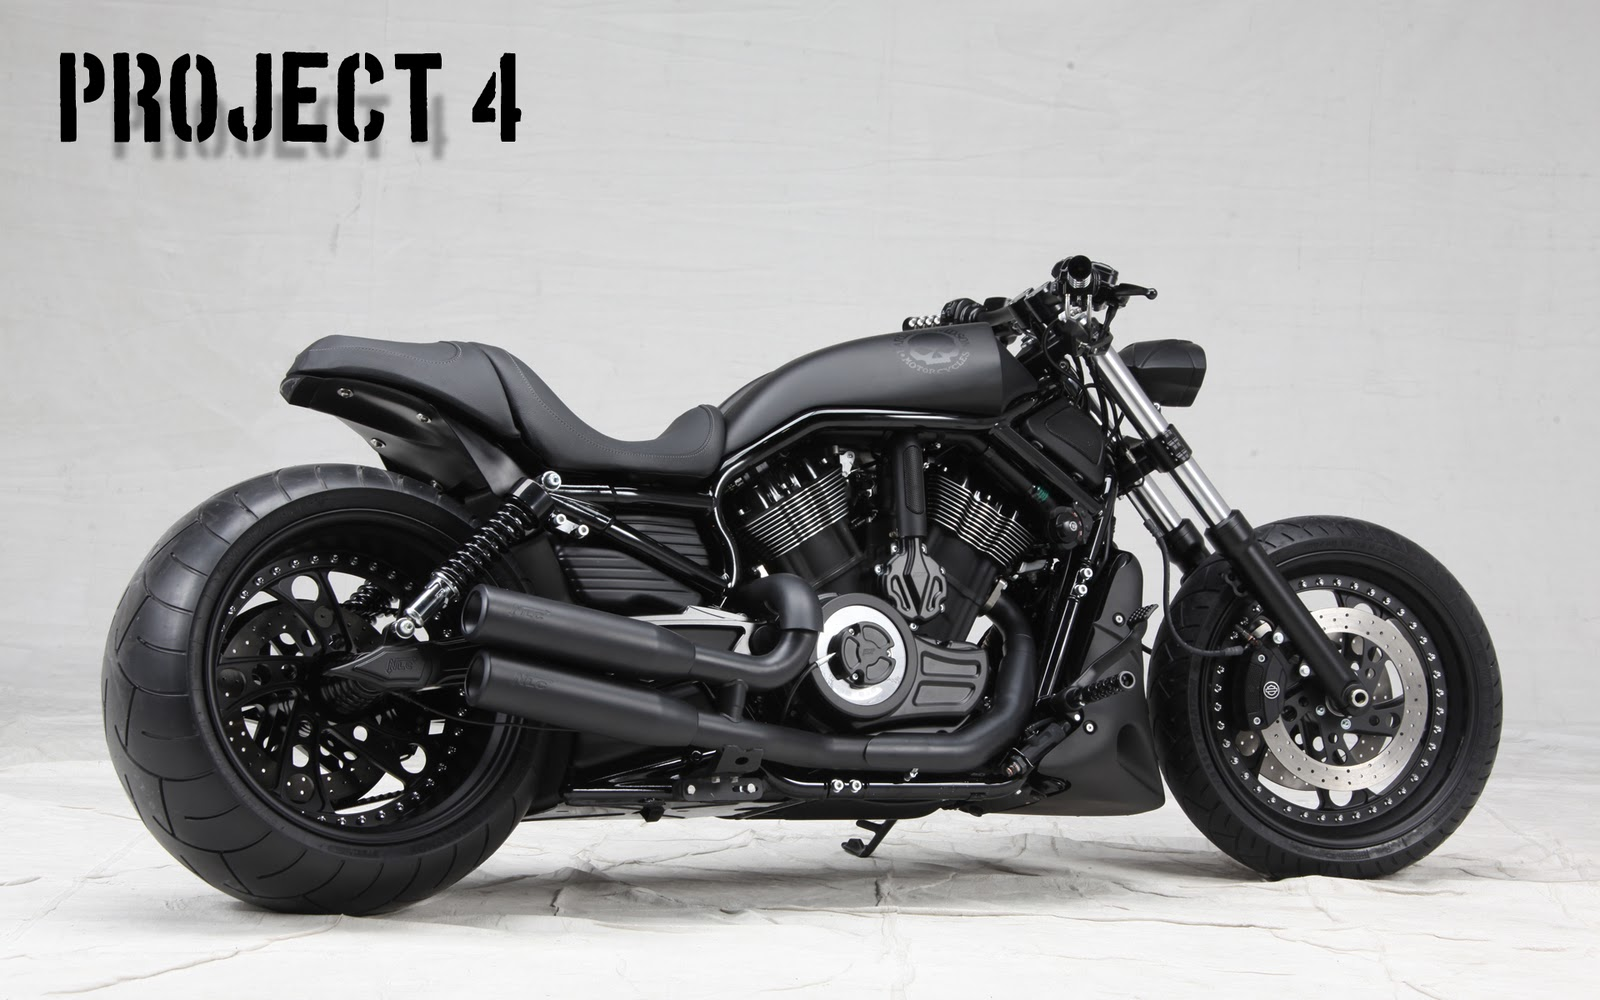 Harley Davidson 7220 Hd Wallpapers in Bikes   Imagescicom 1600x1000